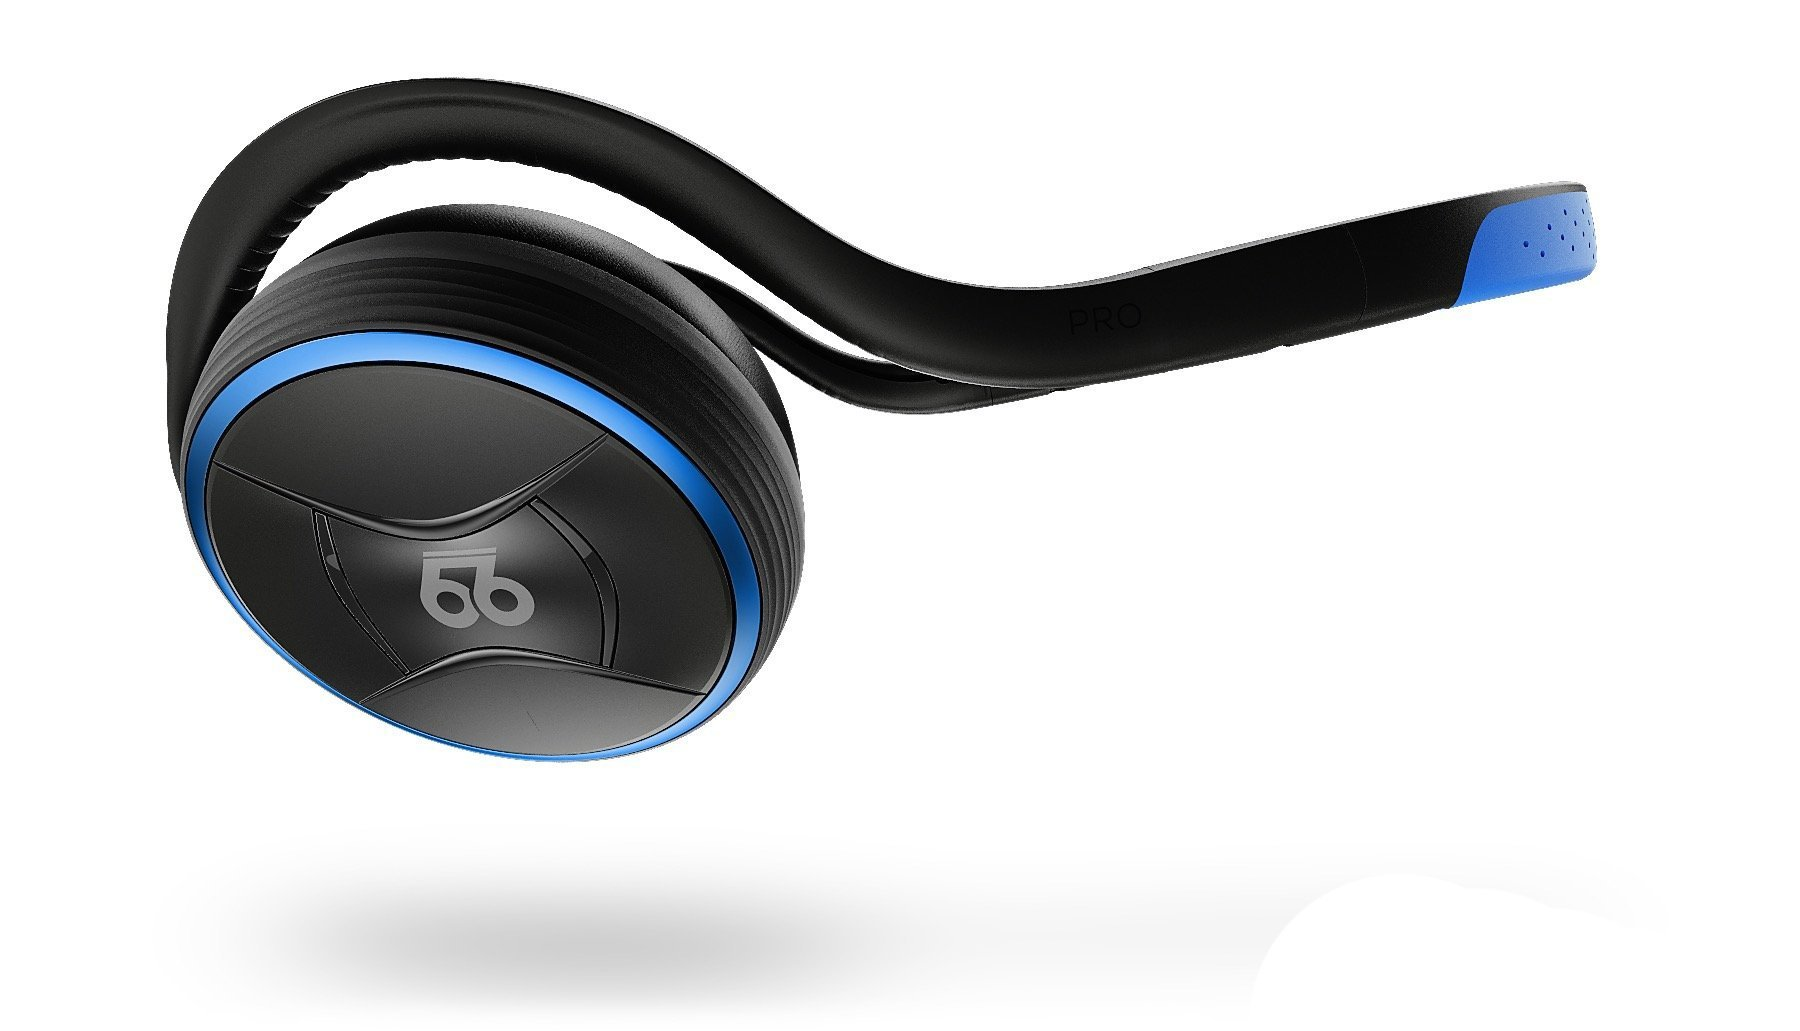 66 AUDIO - PRO Voice - Bluetooth Wireless Headphones with Amazon Alexa Voice Recognition Technology